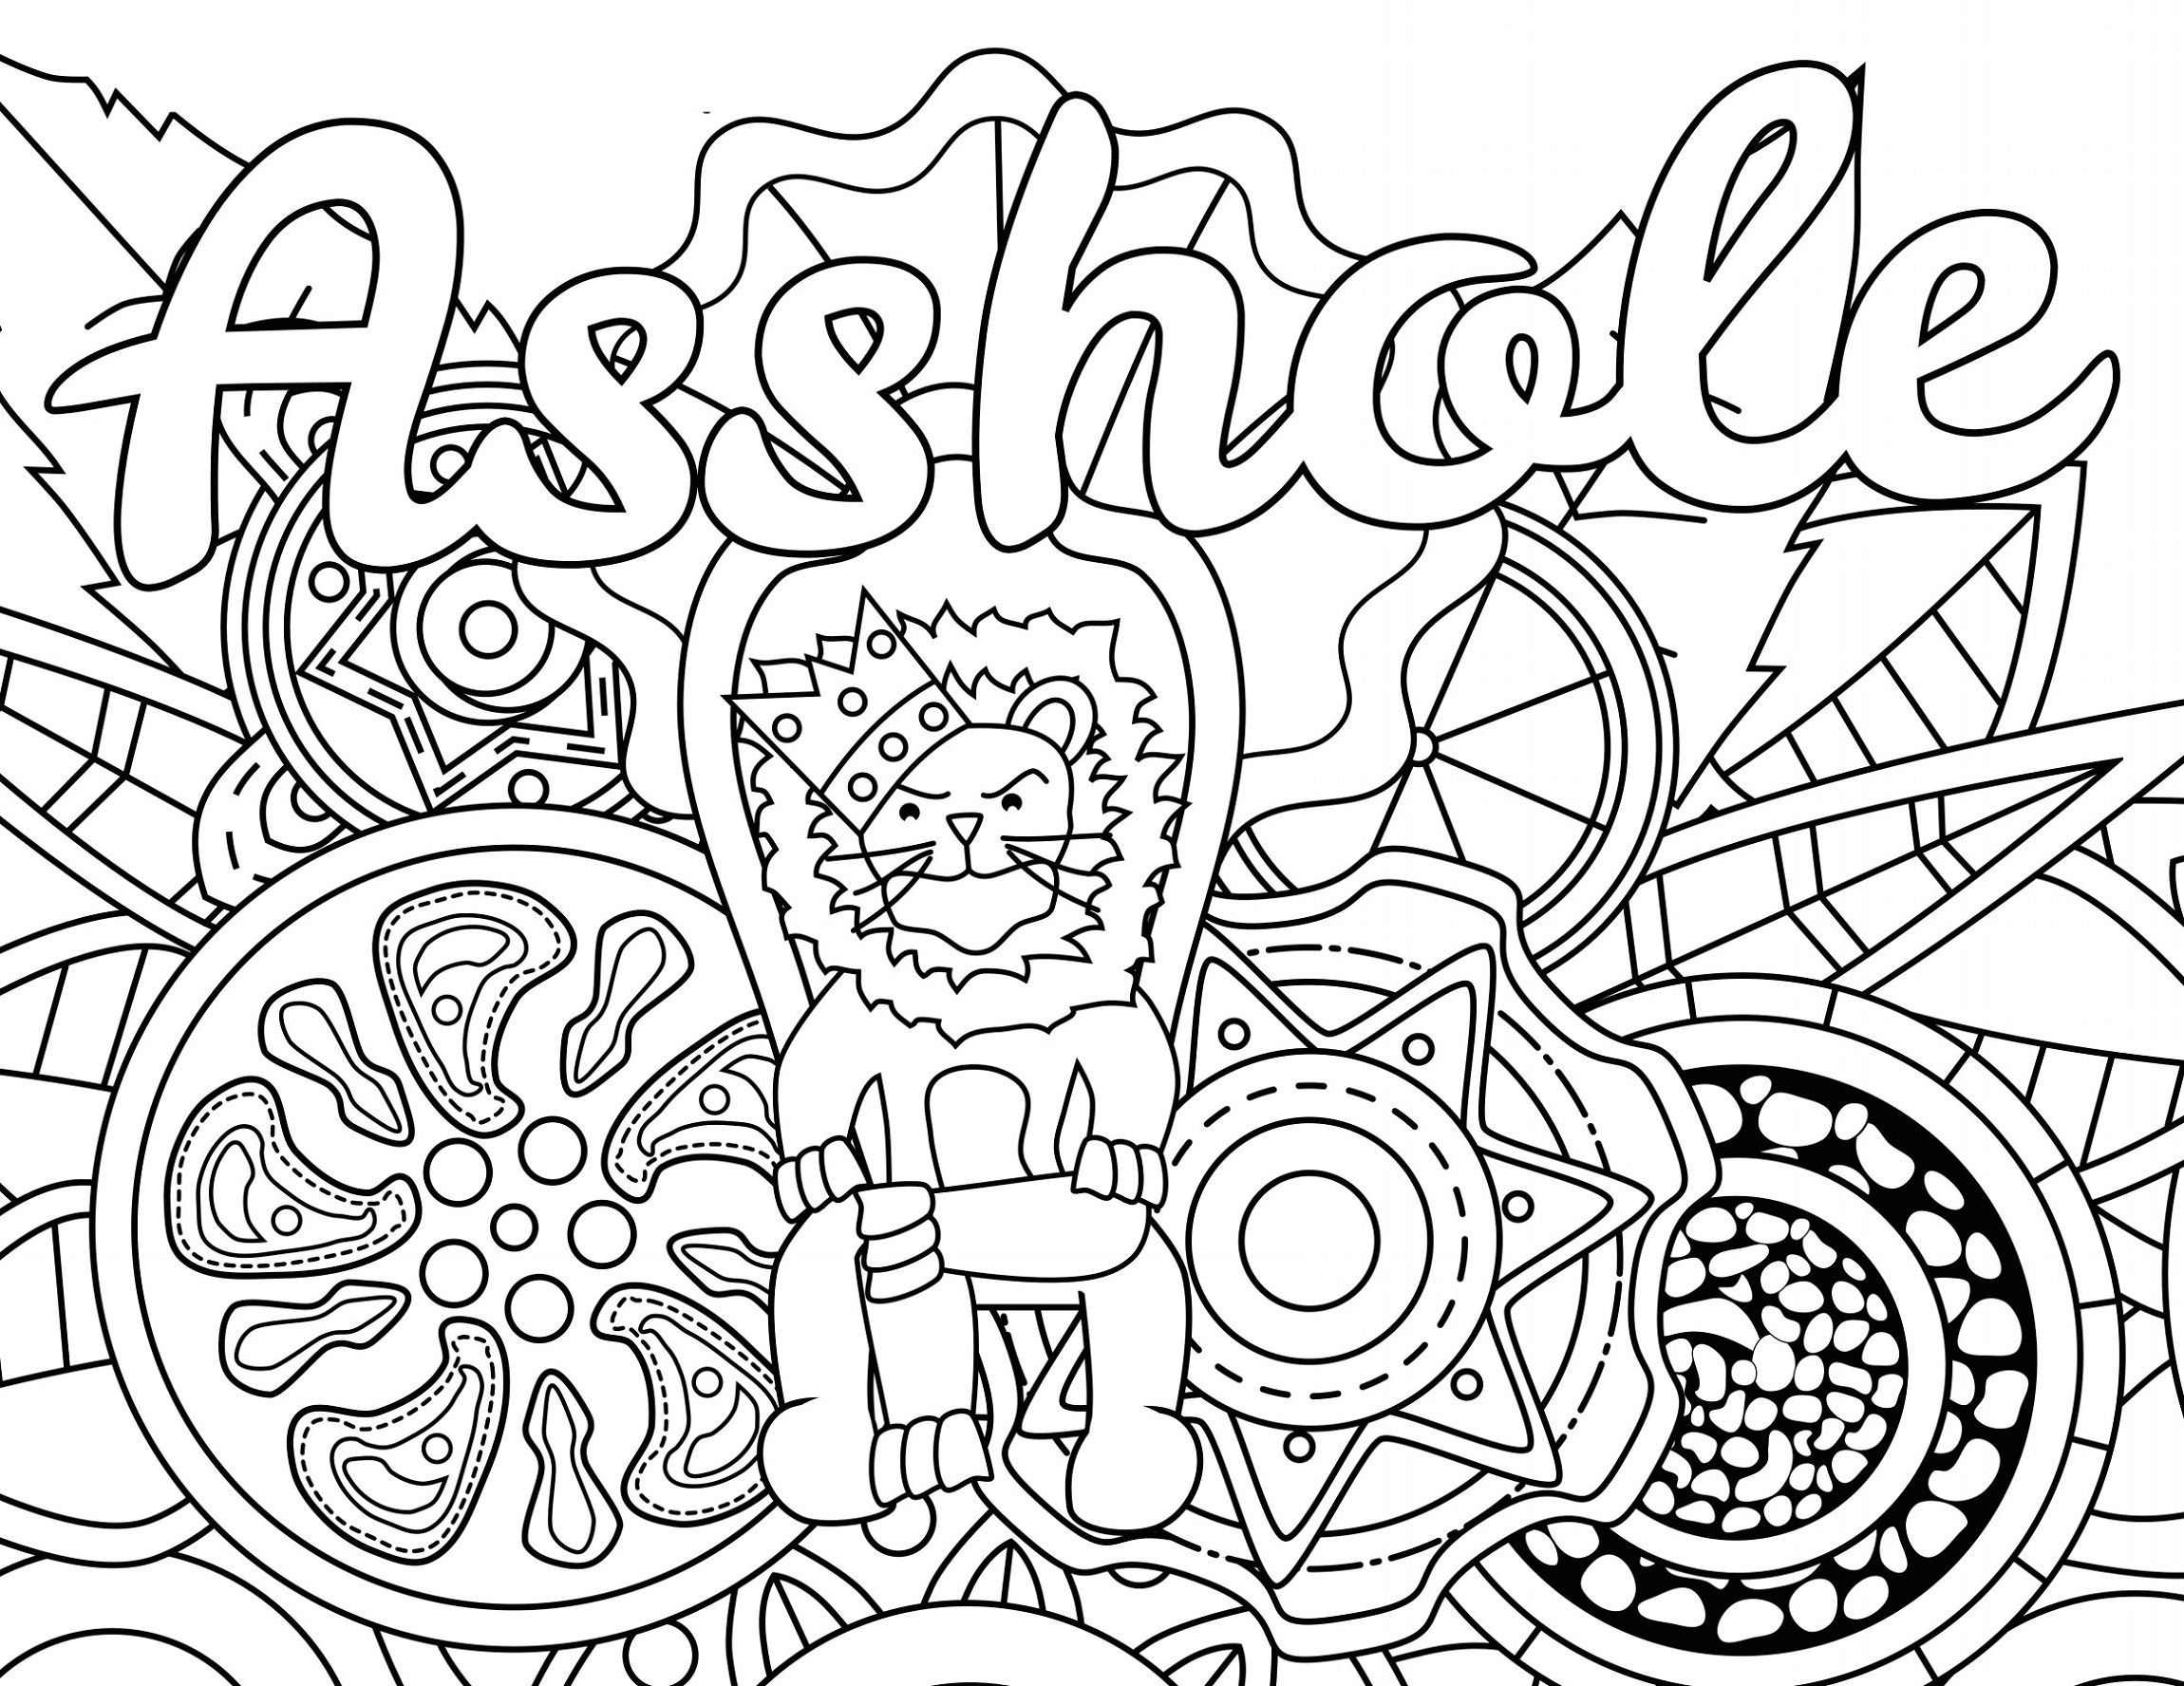 Curse Word Coloring Book Asshole